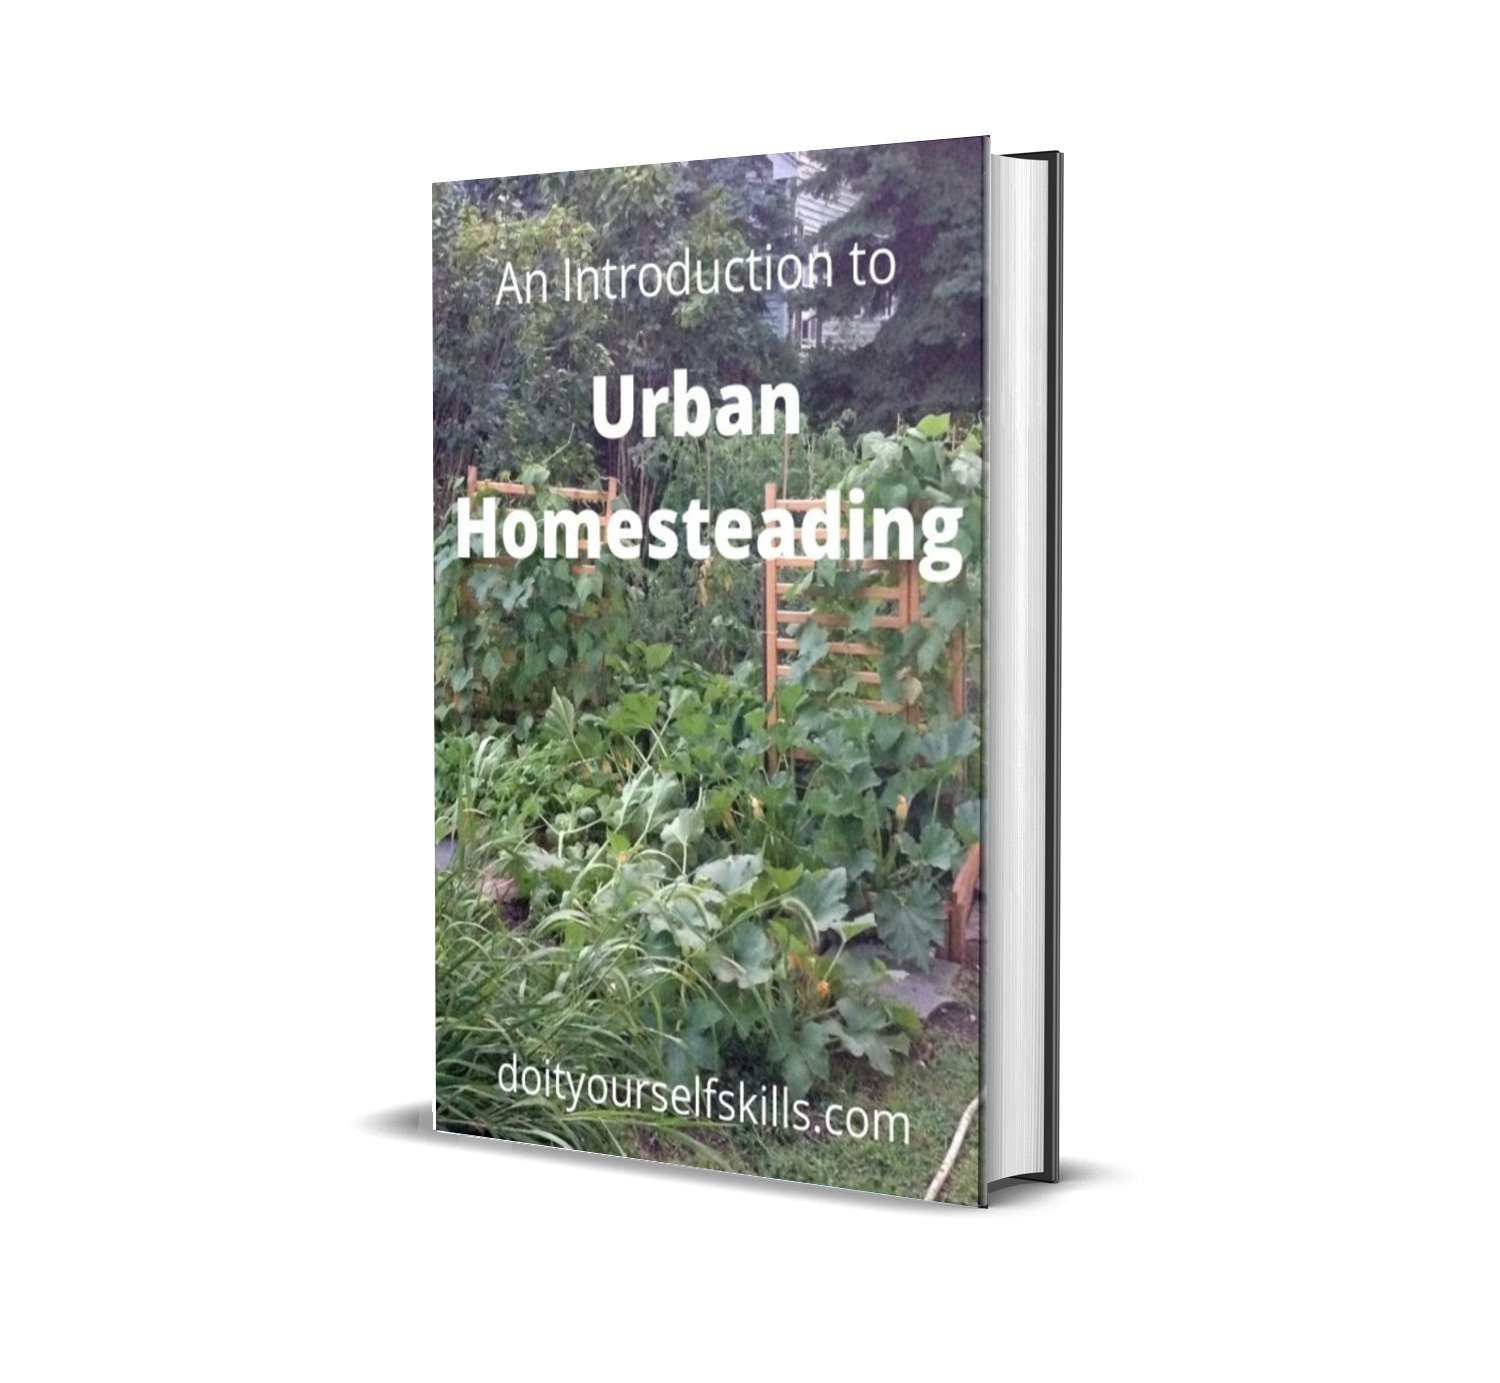 a book titles An Introduction to Urban Homesteading